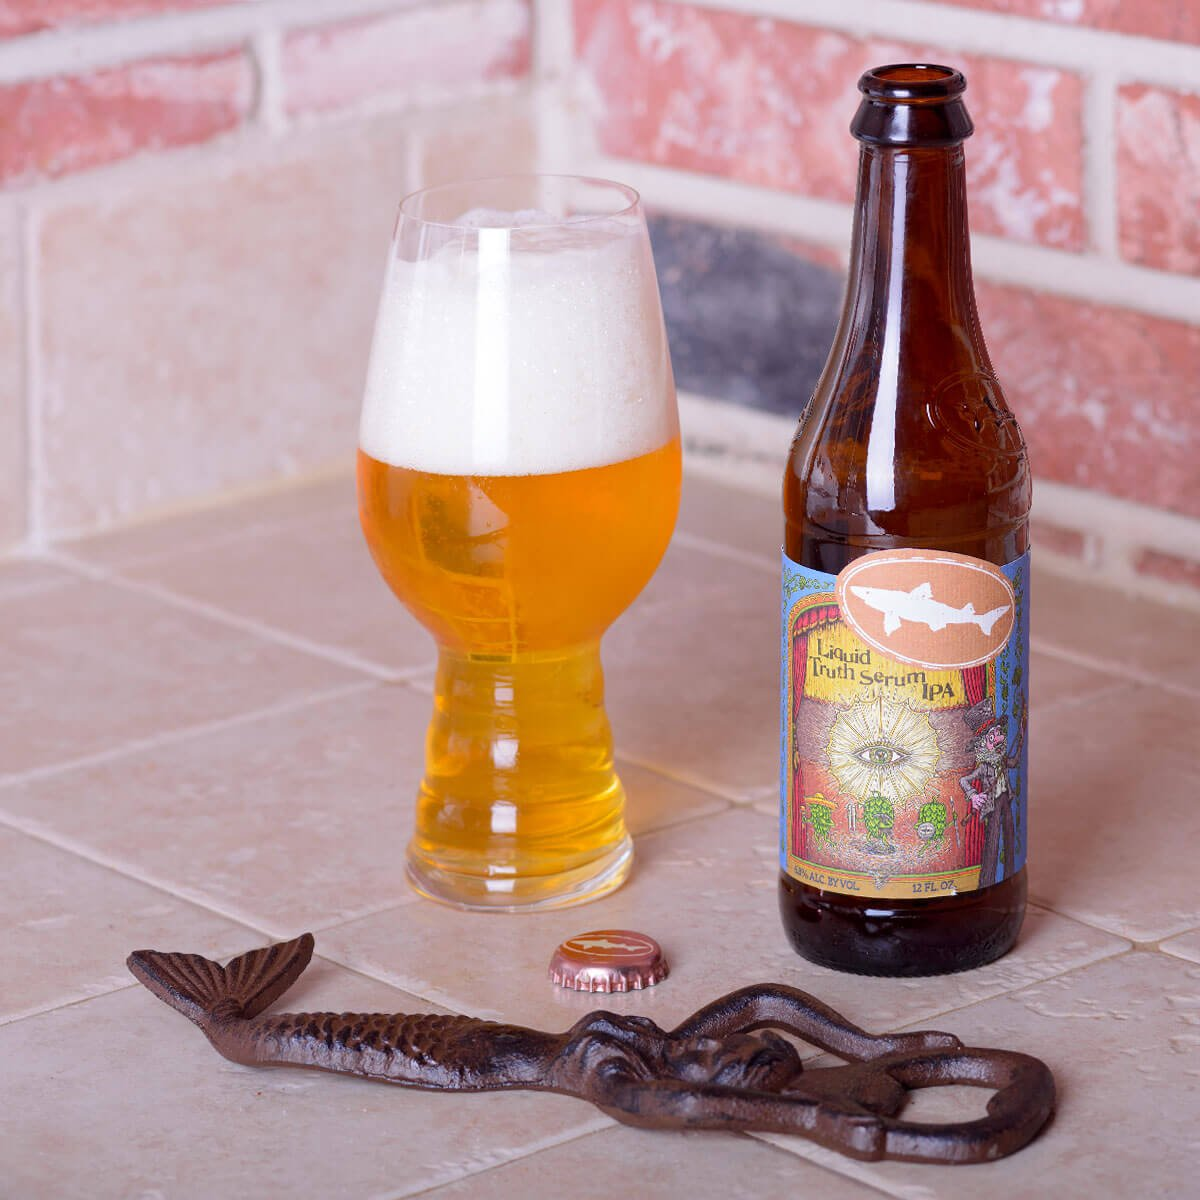 Liquid Truth Serum, an American IPA by Dogfish Head Craft Brewery